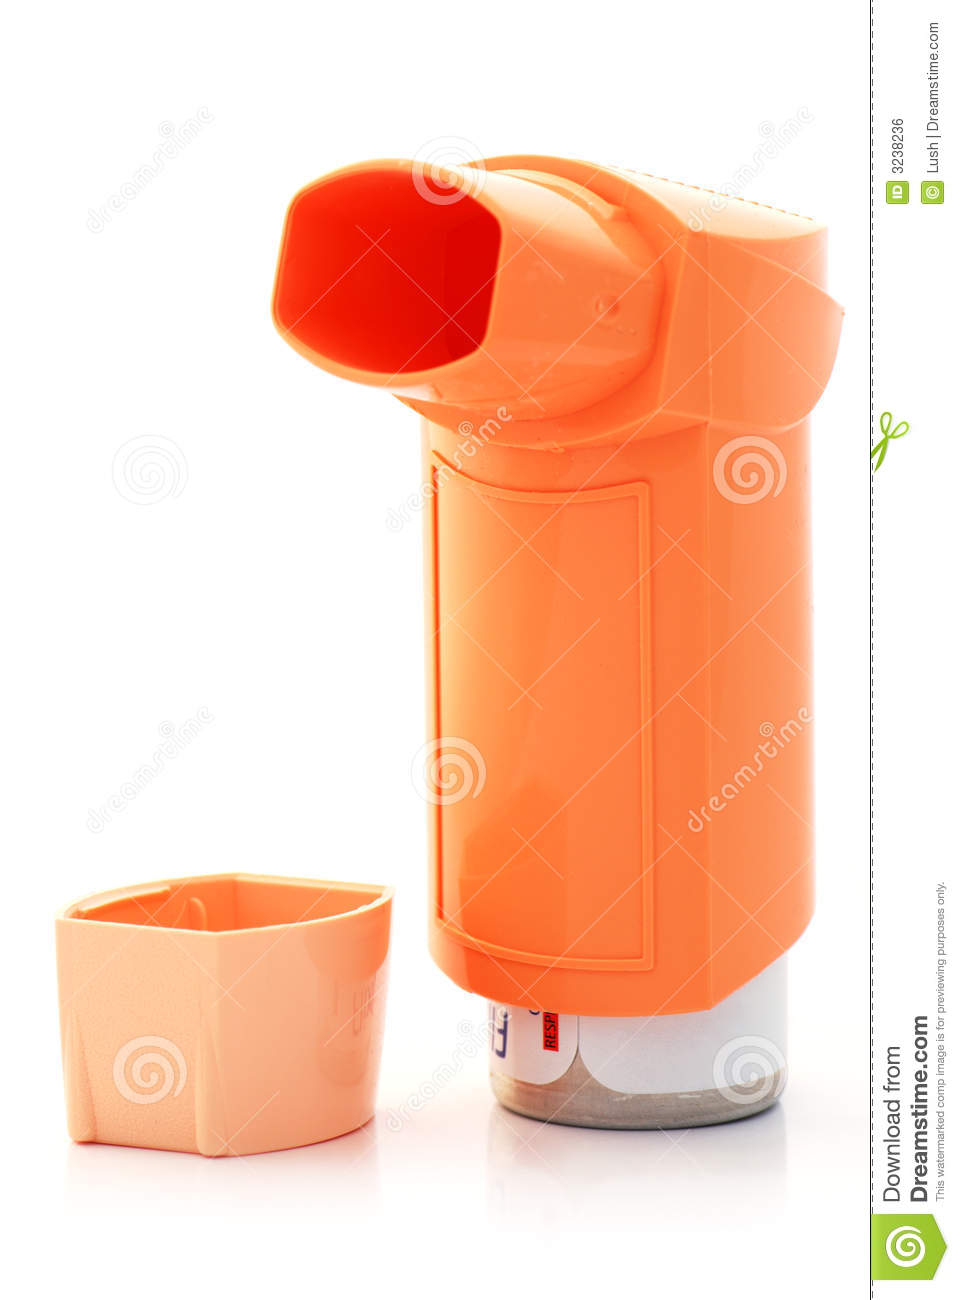 Orange Asthma Inhaler And Hood Royalty Free Stock Image